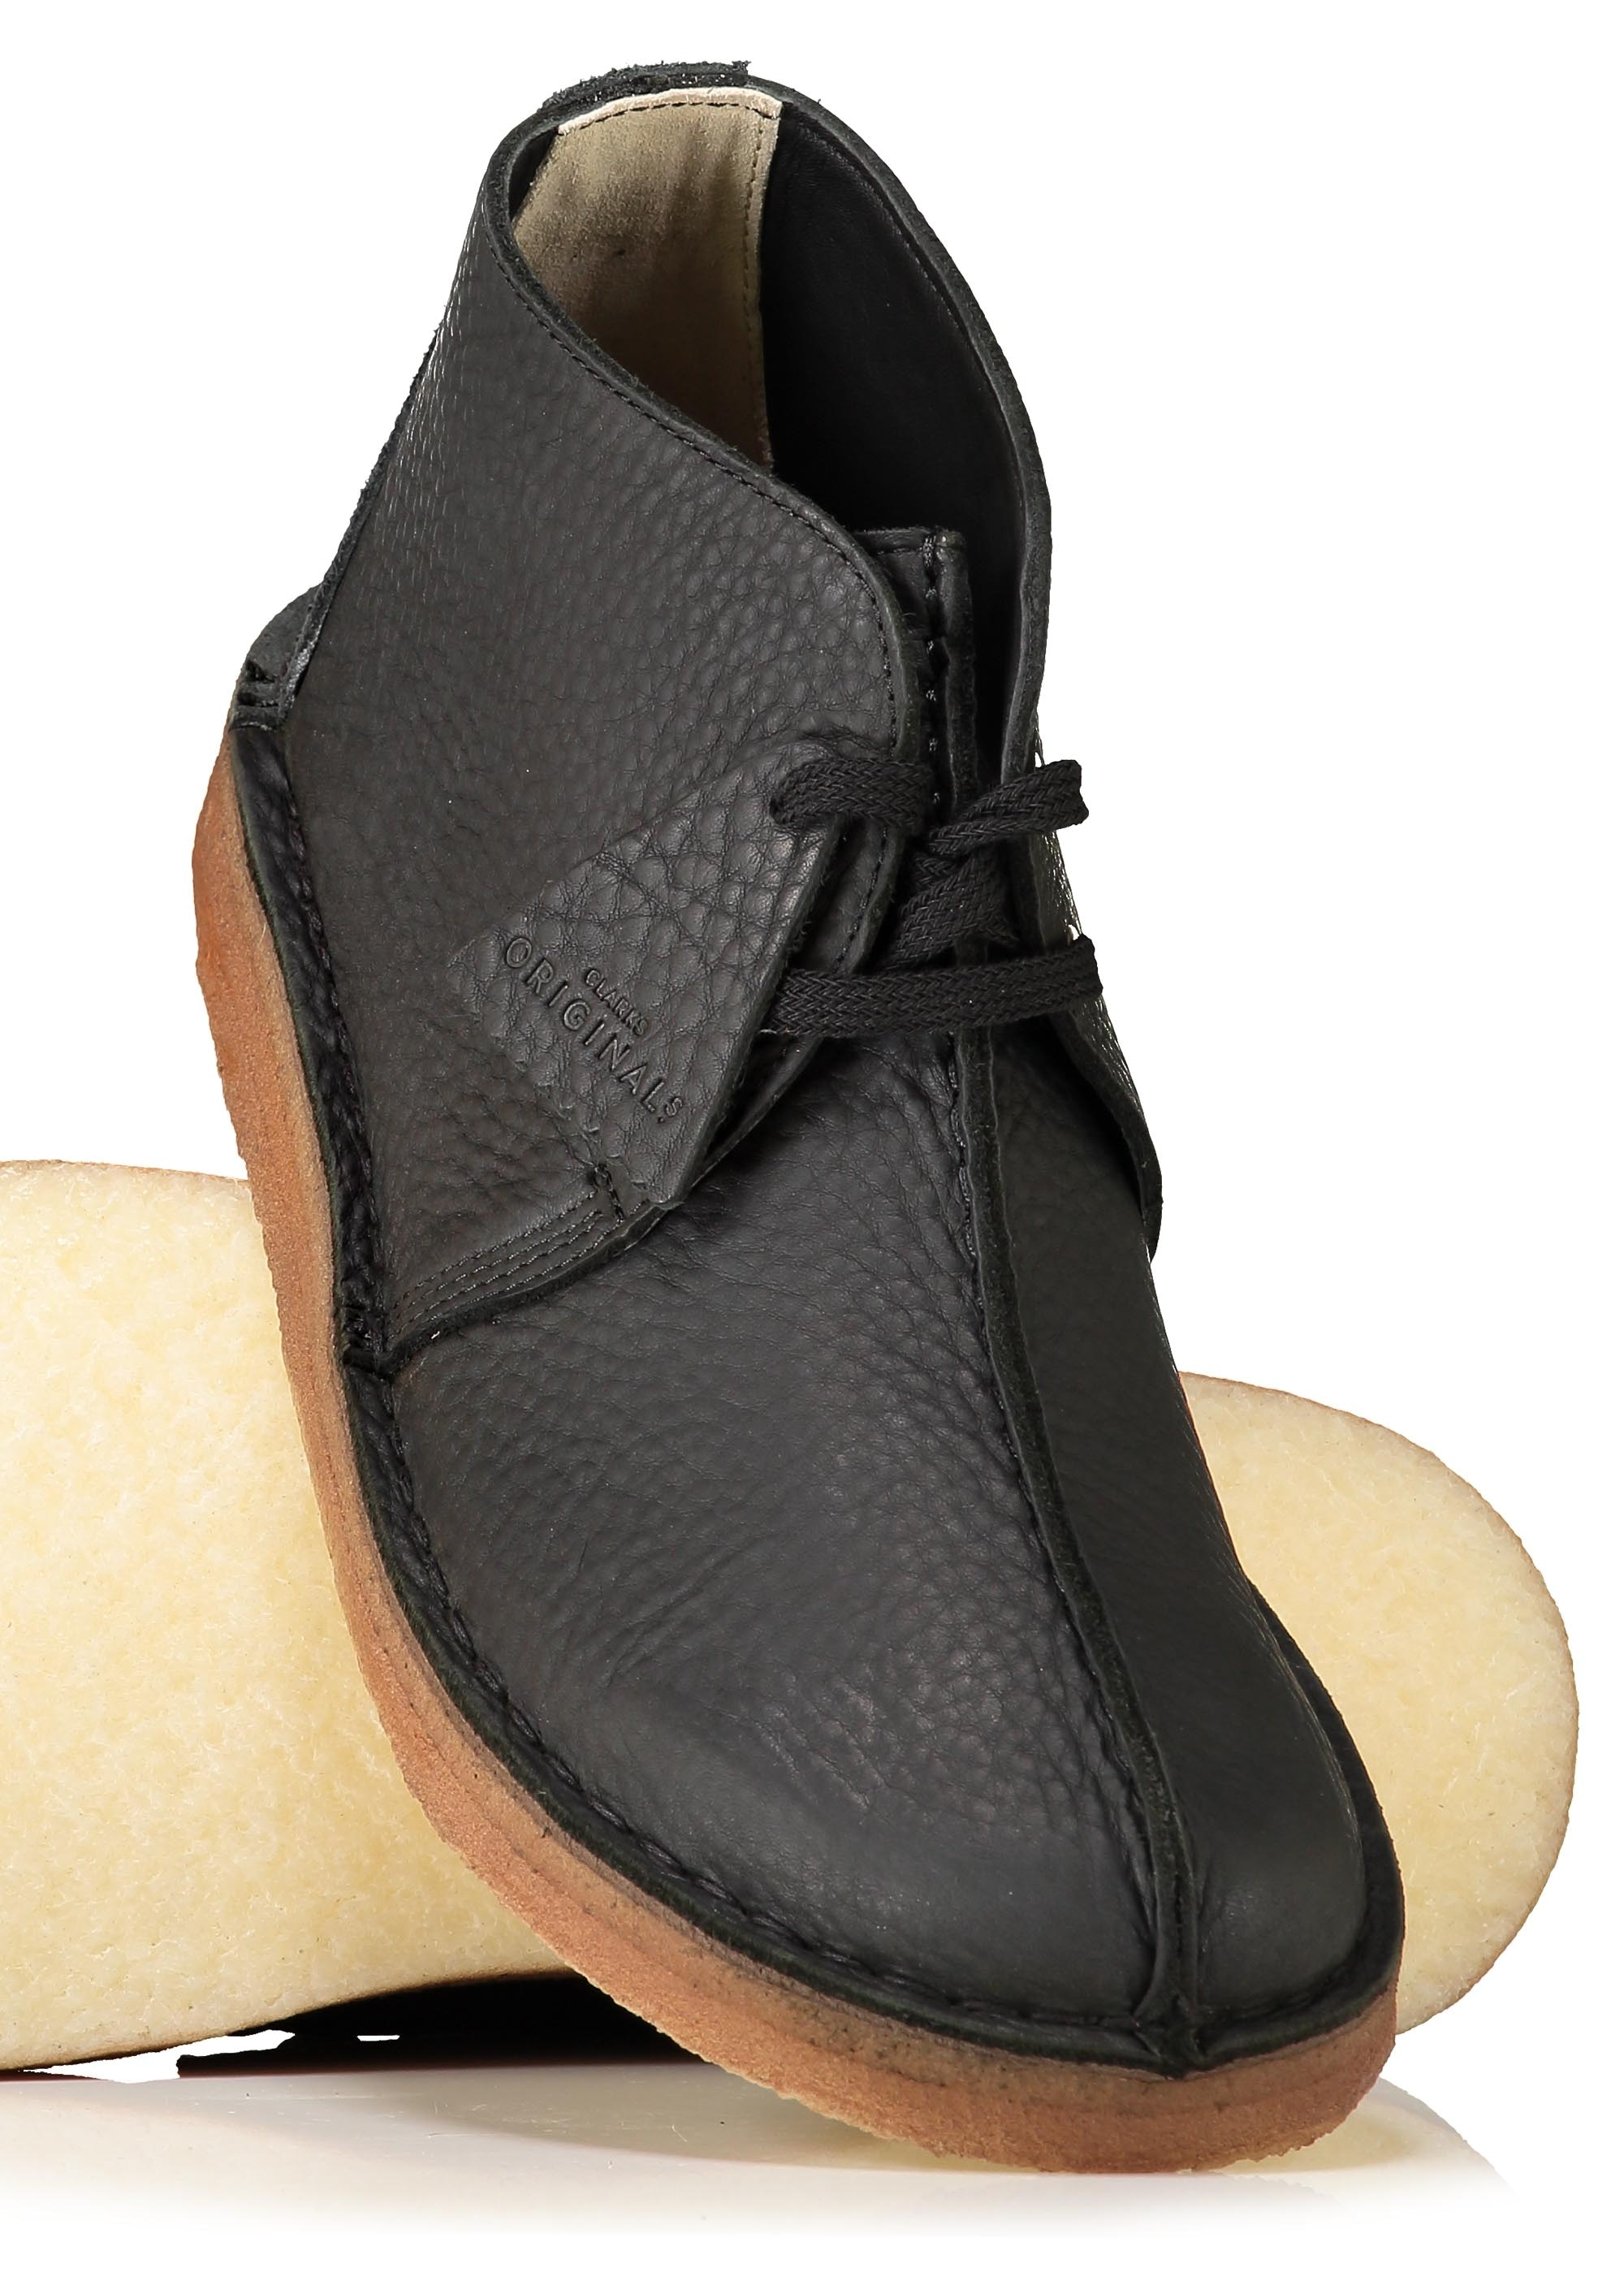 clarks desert trek black leather shoe